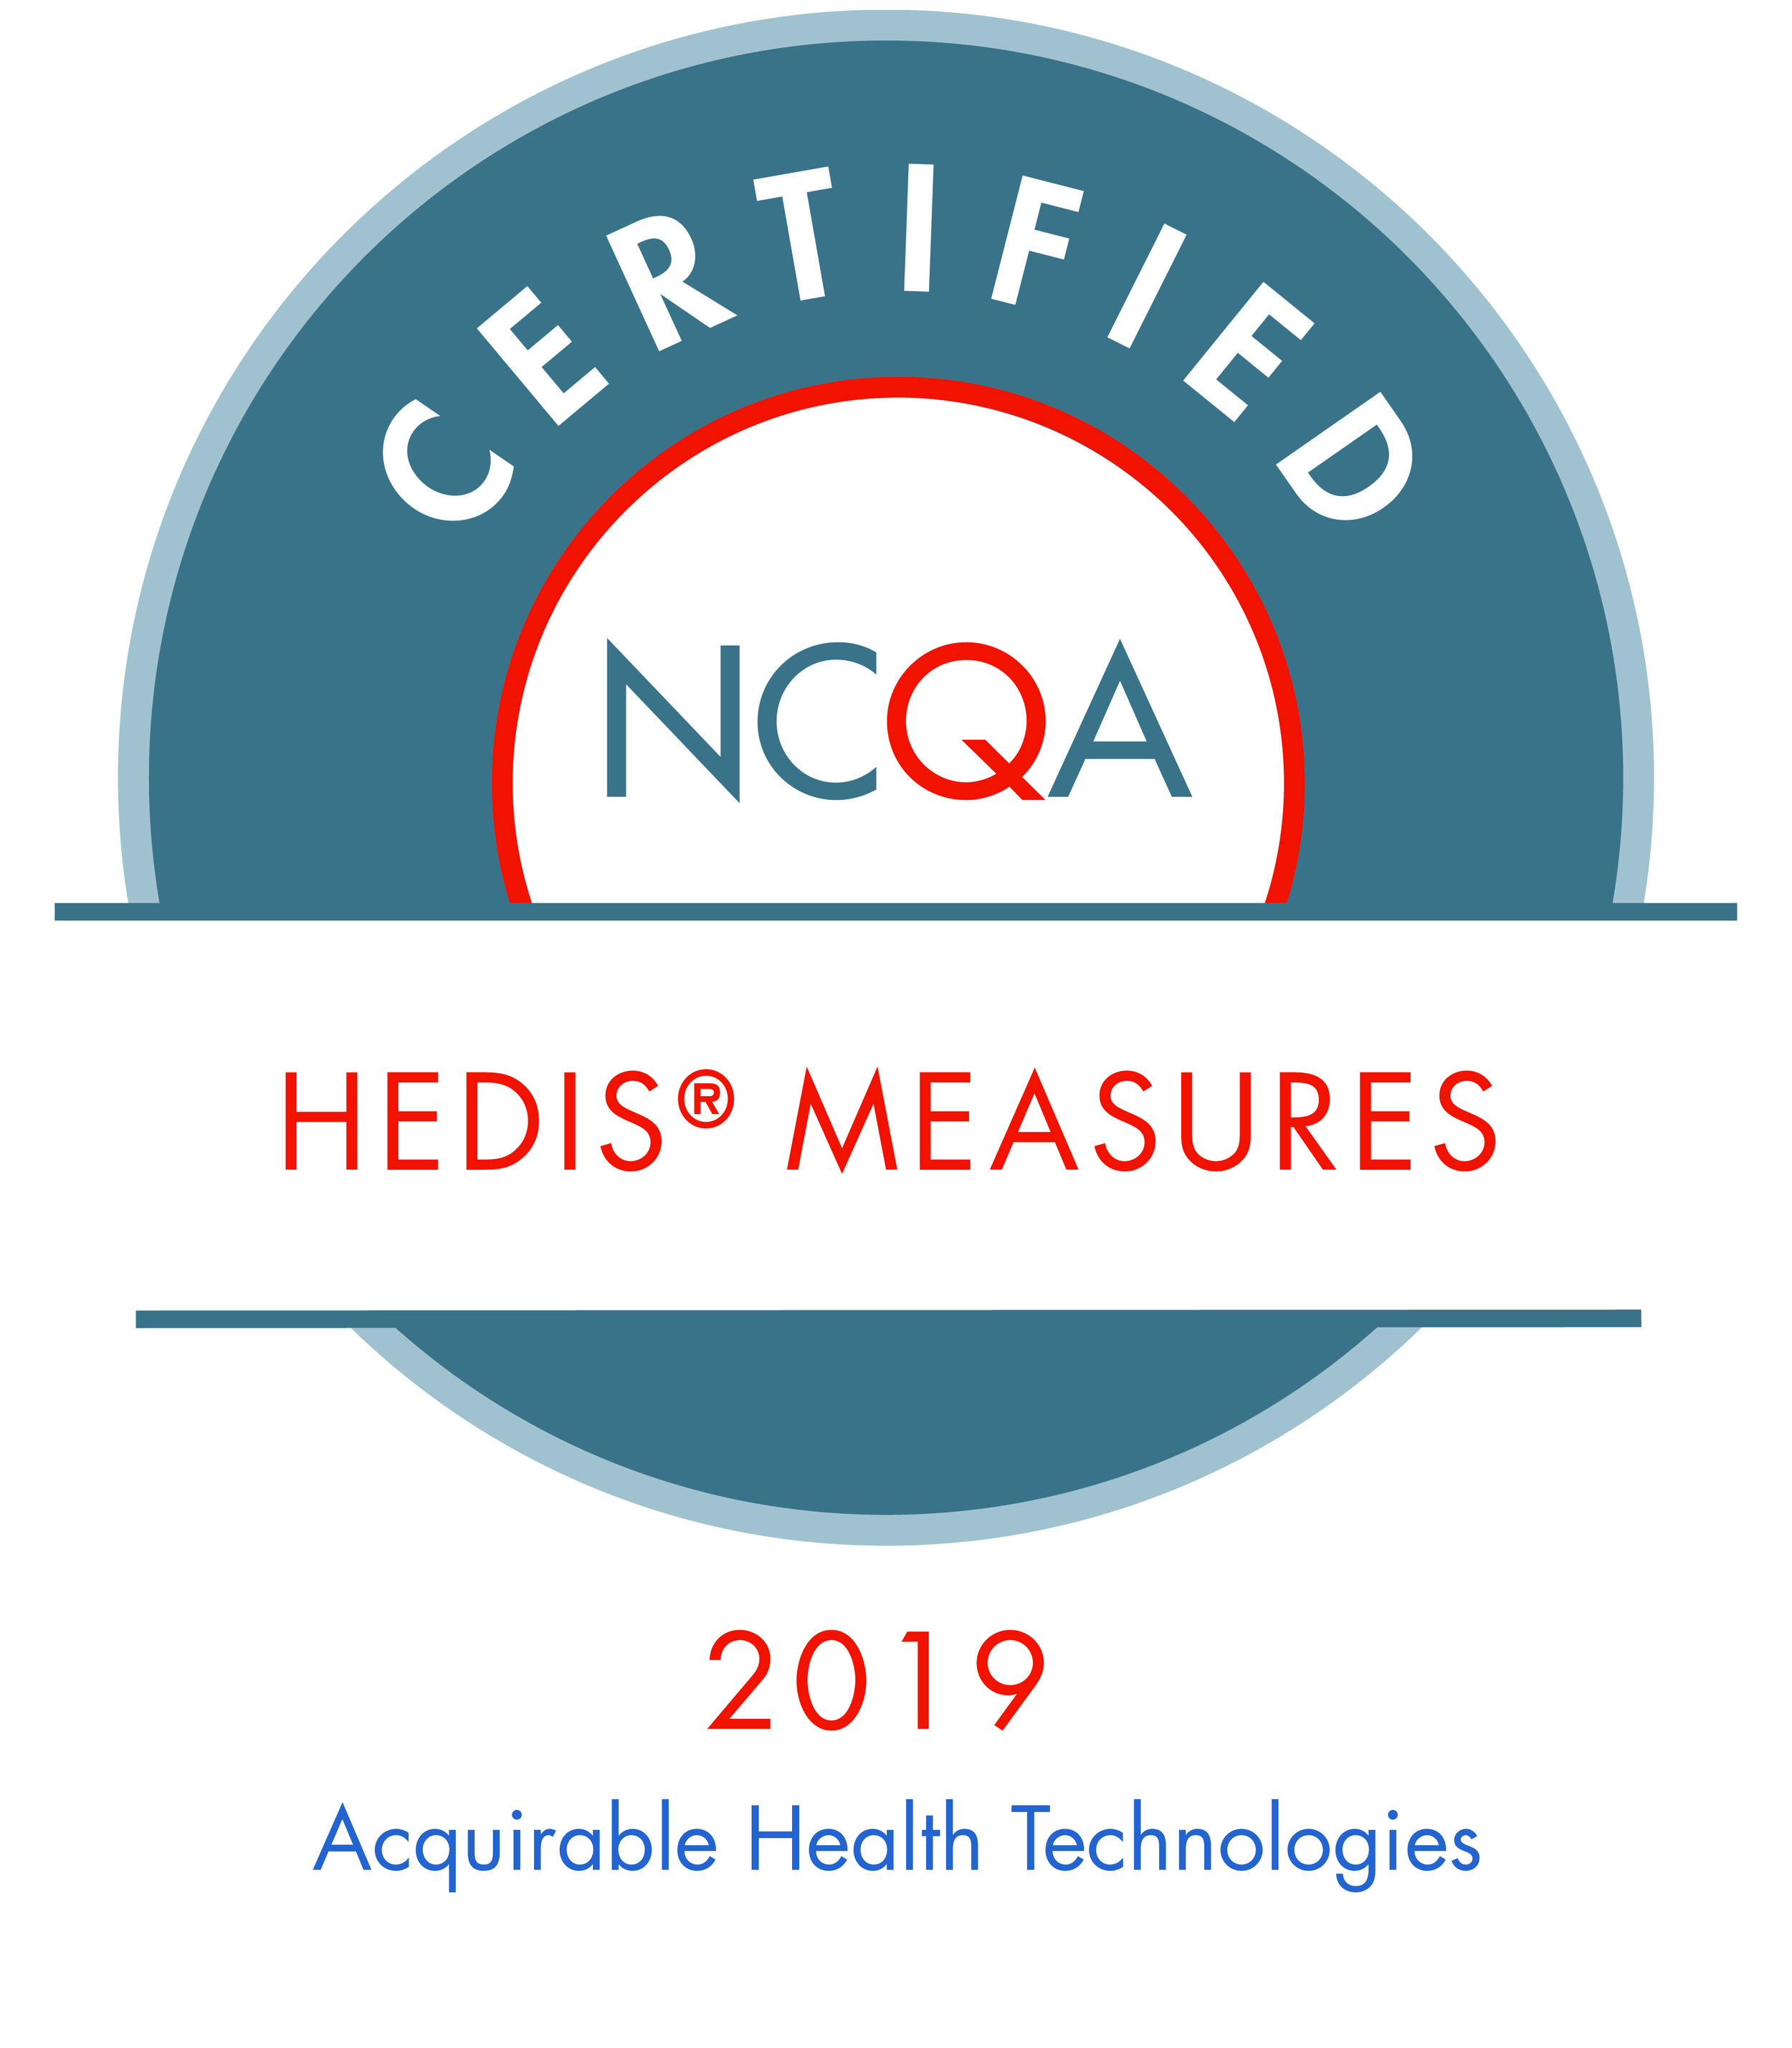 Certified HEDIS Measures AHT 03072019.jpg